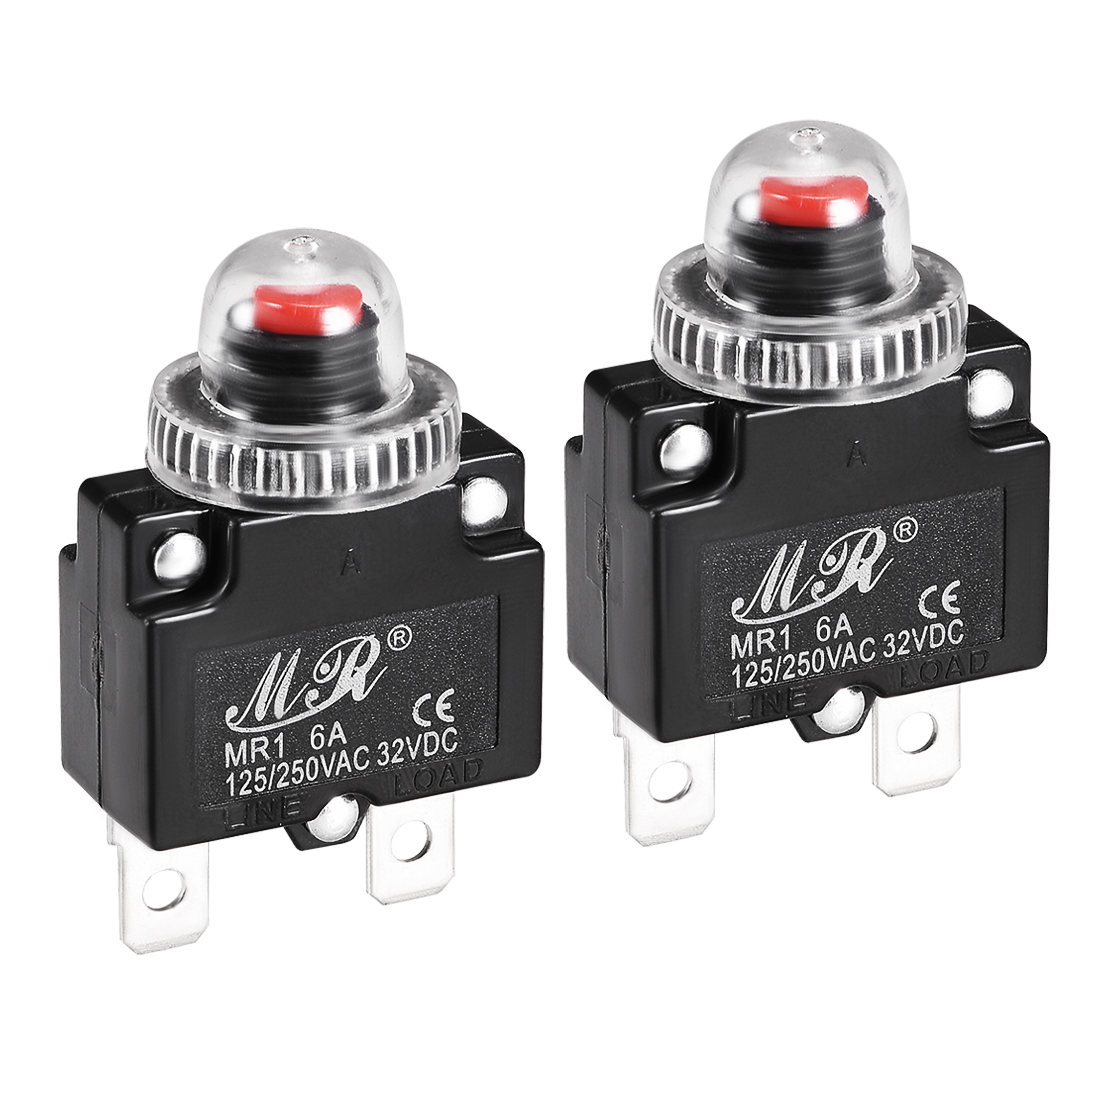 2 Pcs 6A 125/250V Push Button Reset Overload Protector Thermal Circuit Breaker